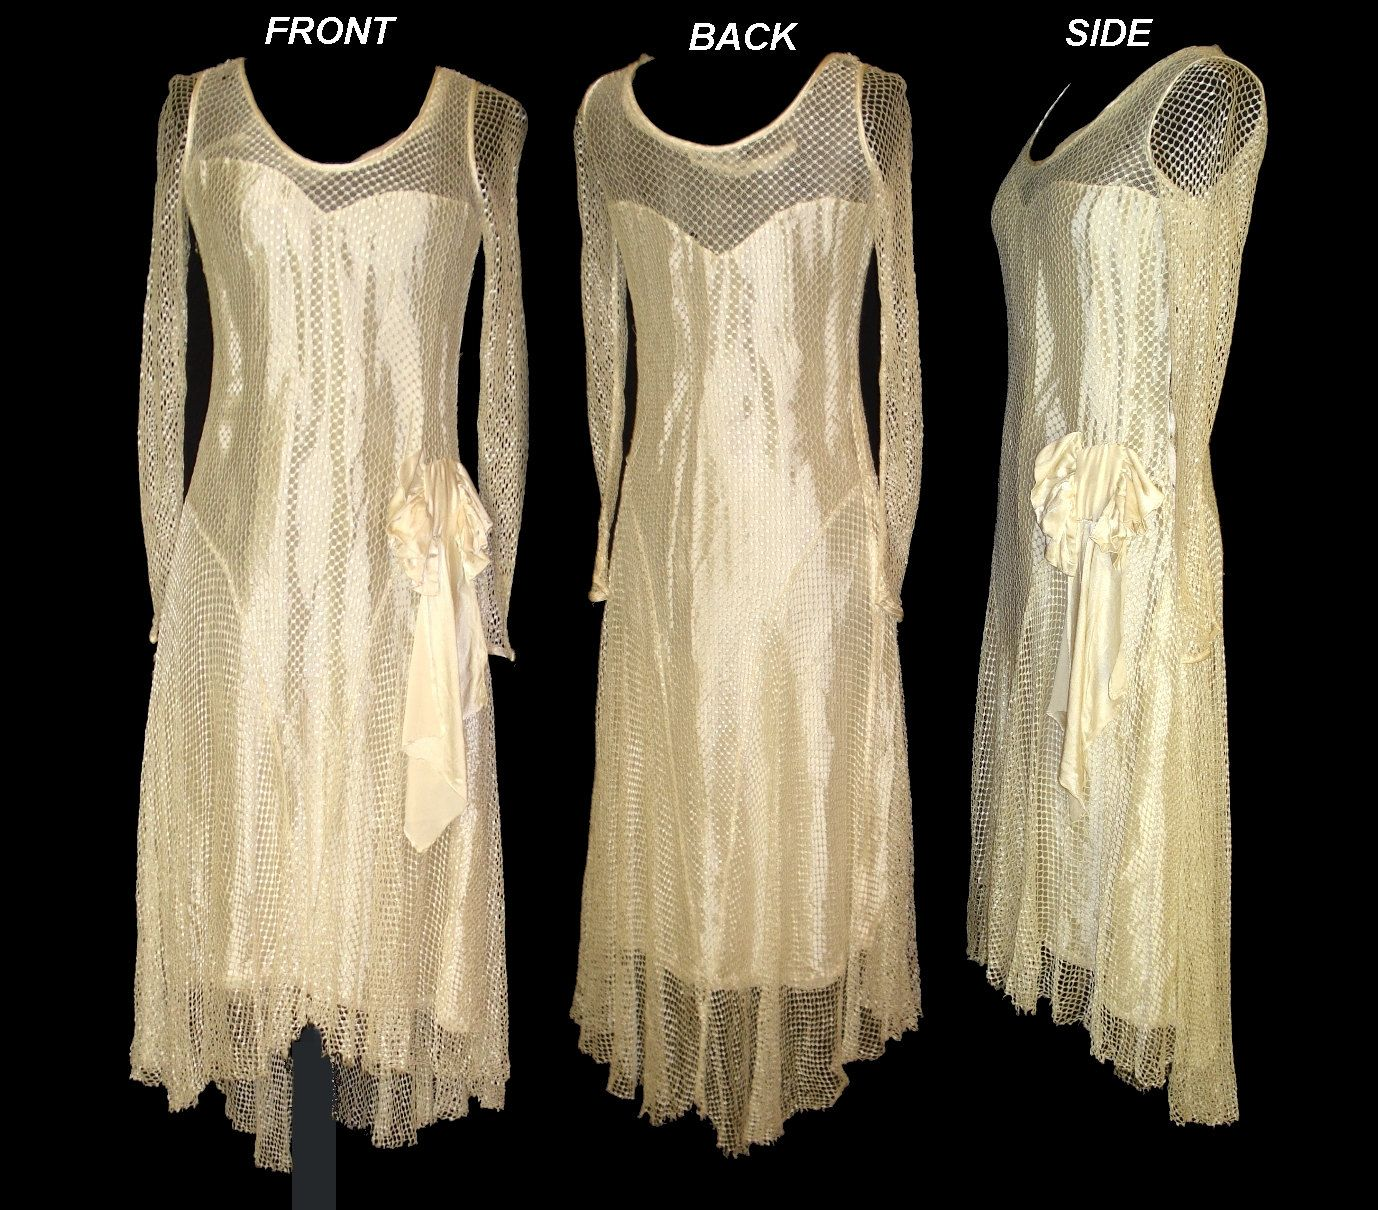 Vintage late 1920s 20s 1930s 30s art deco art nouveau for Vintage wedding dresses 1920s